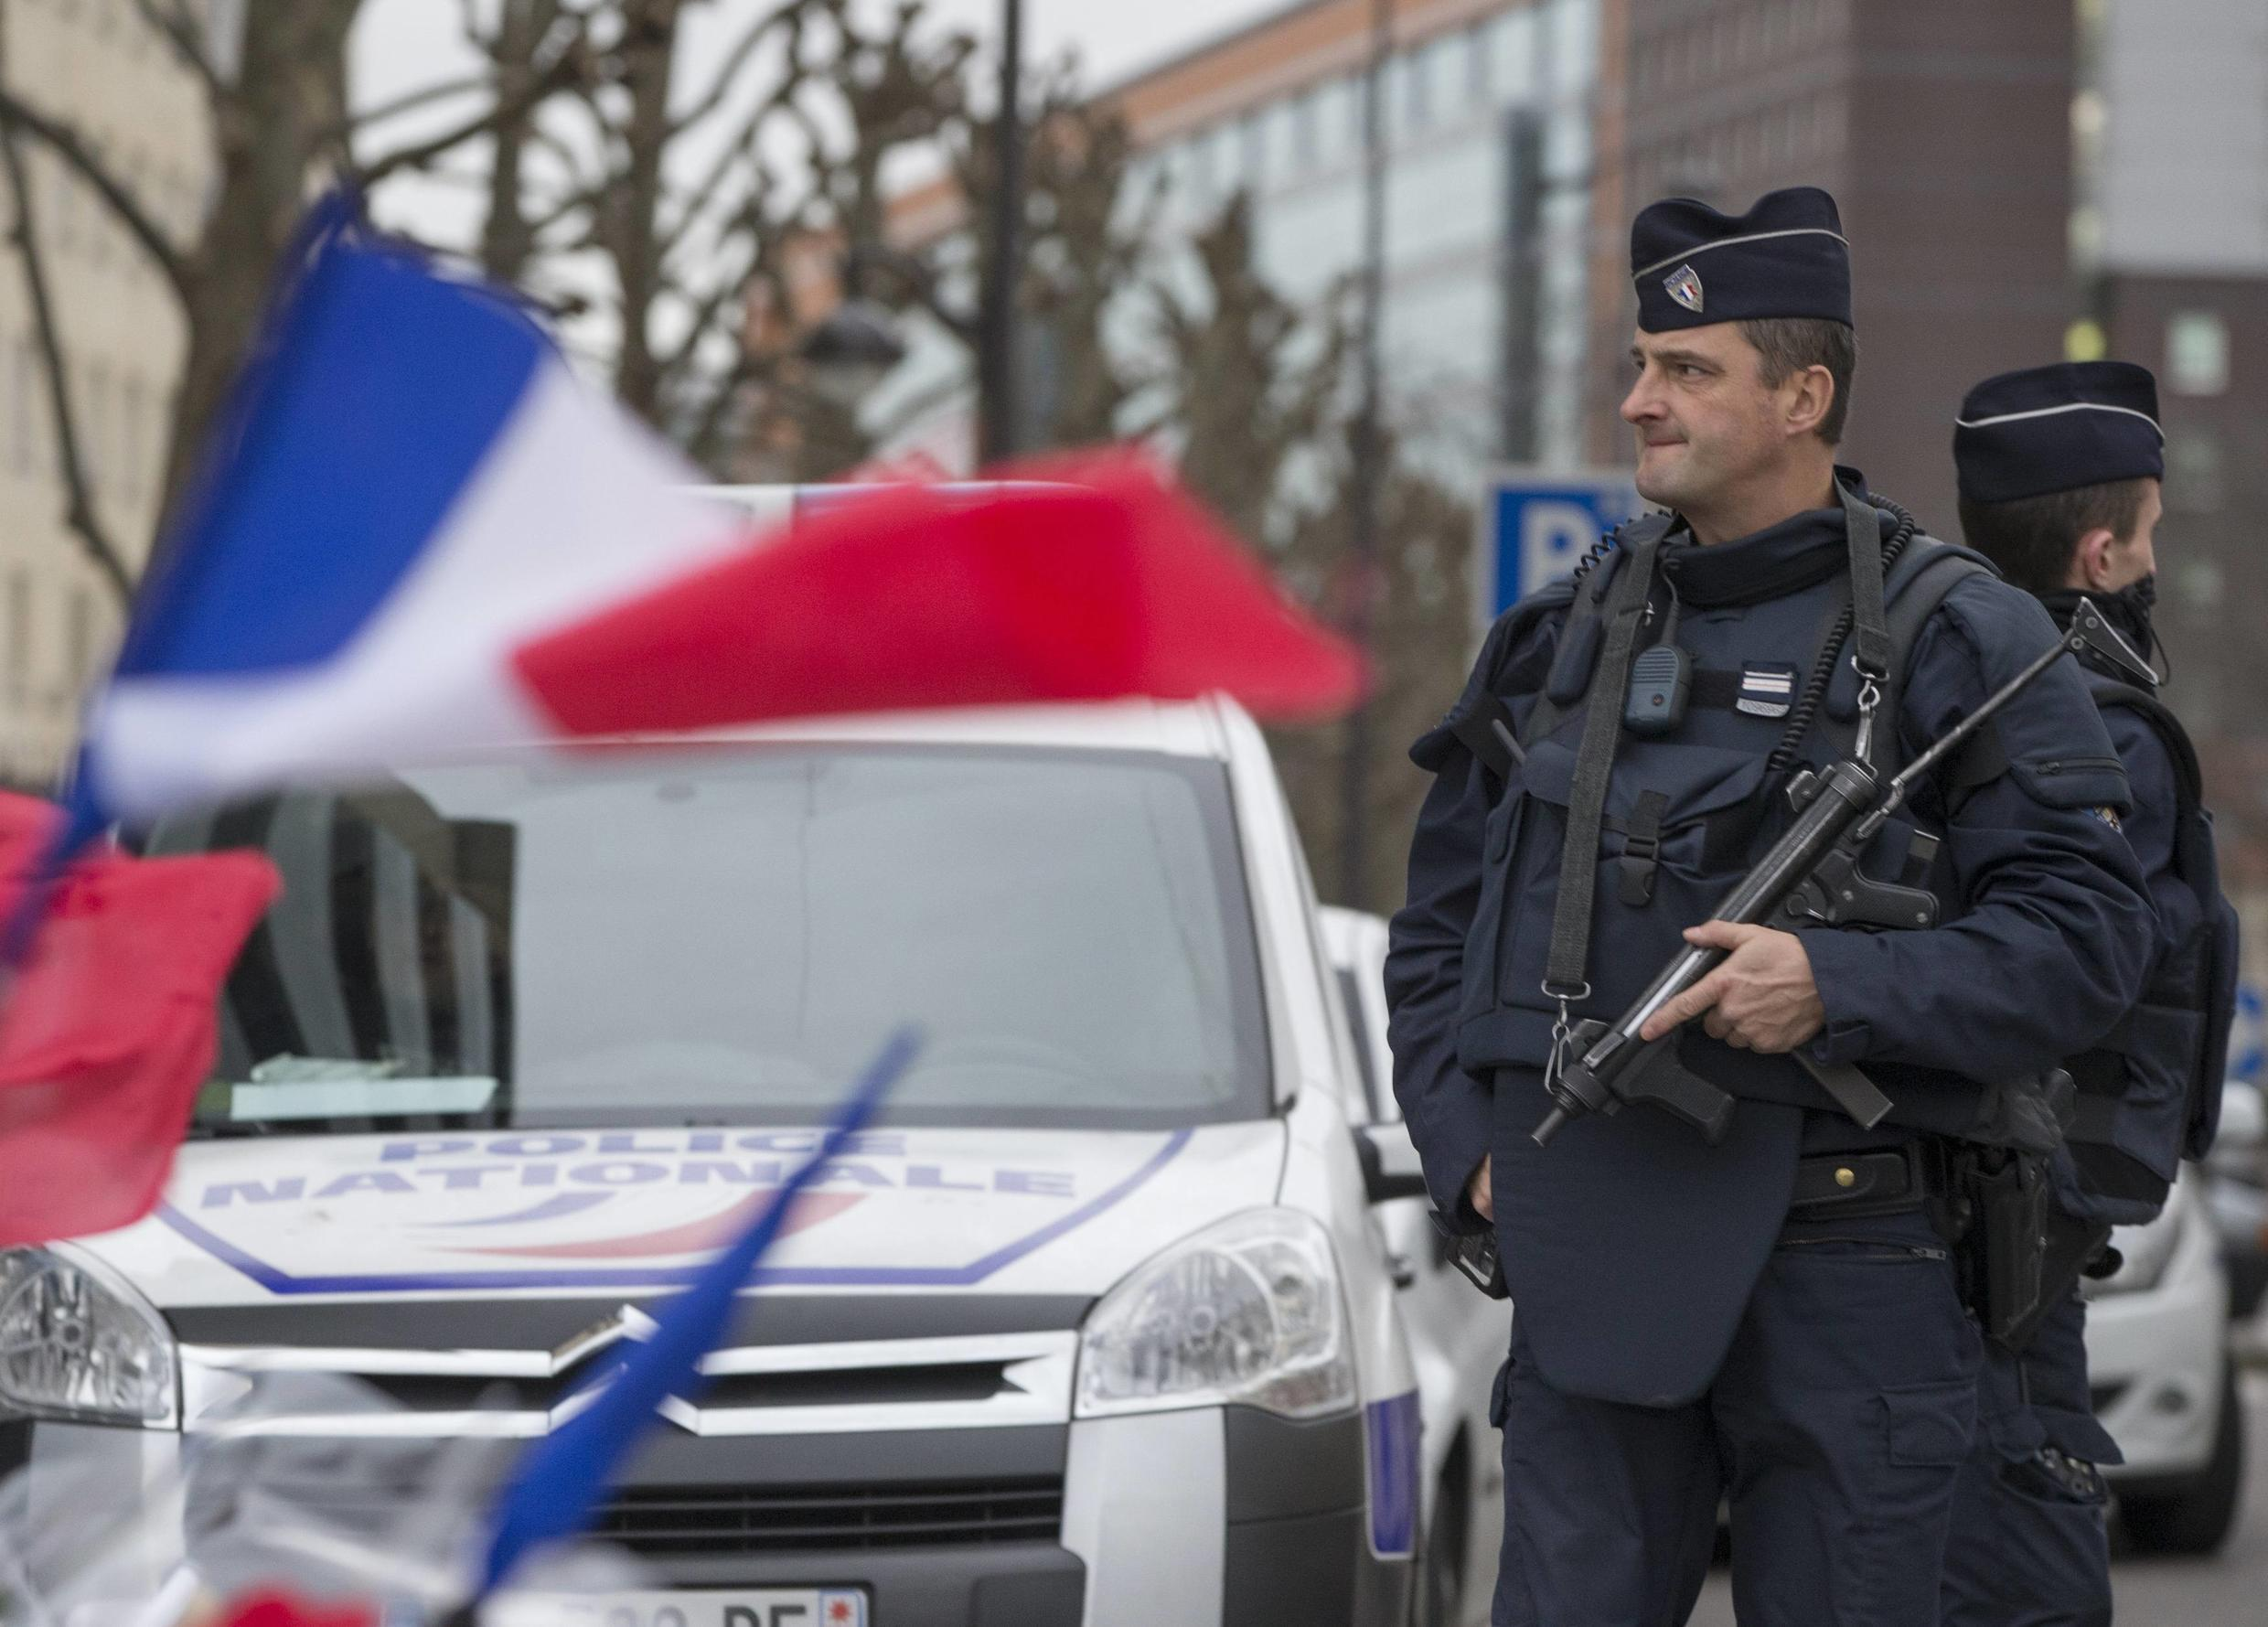 Police in front of the Hyper Cacher supermarket in Paris, where Amedy Coulibaly killed four people